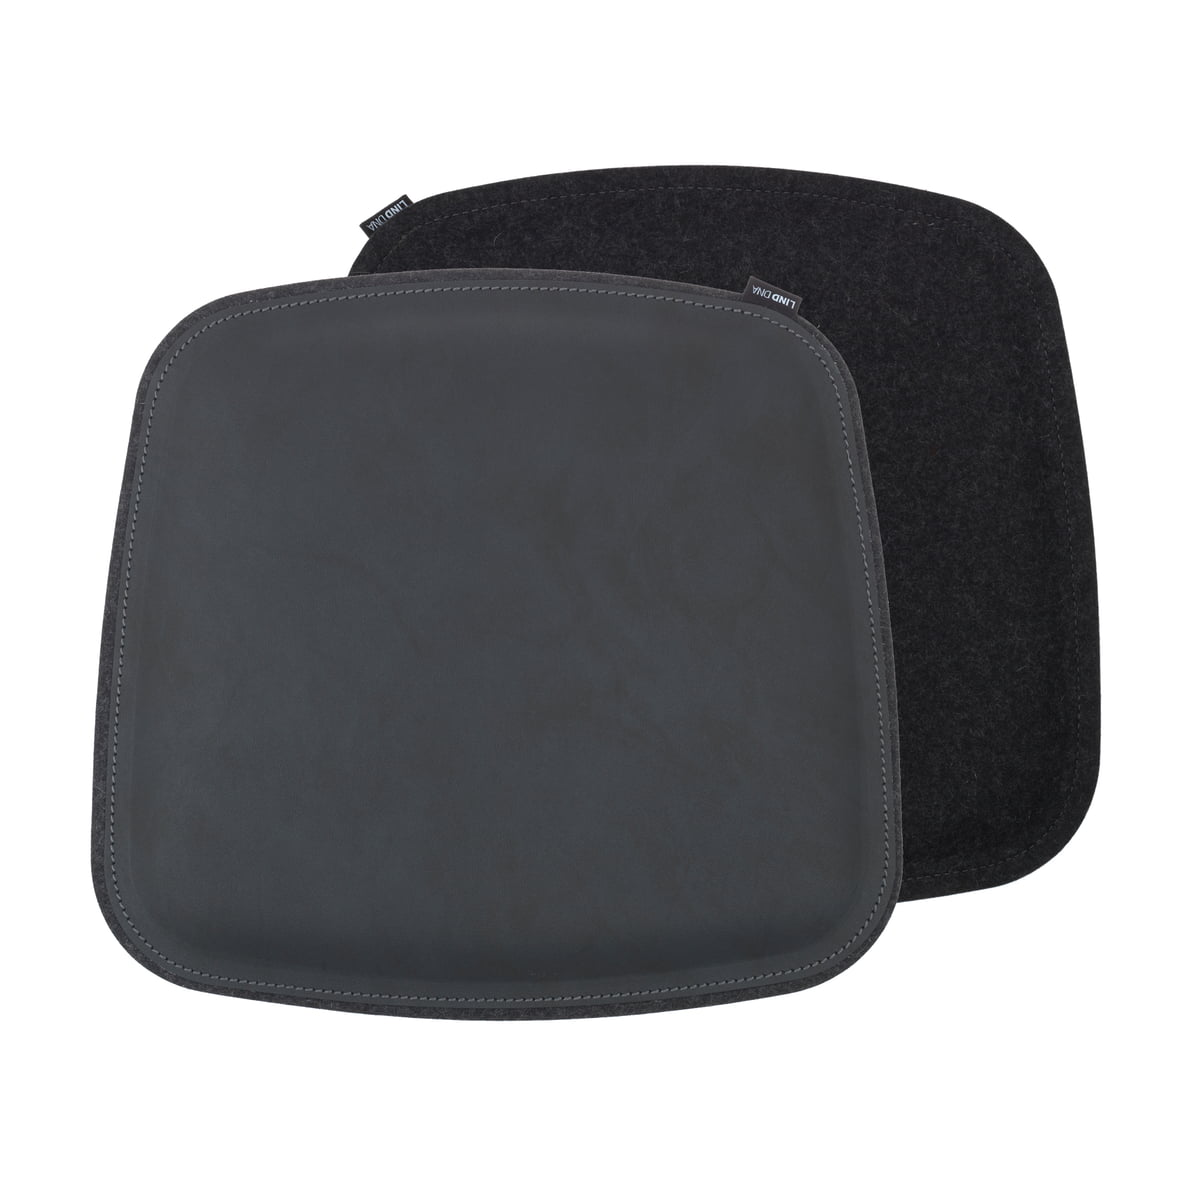 Black Chair Cushion - Cushion by linddna made of nupo in black